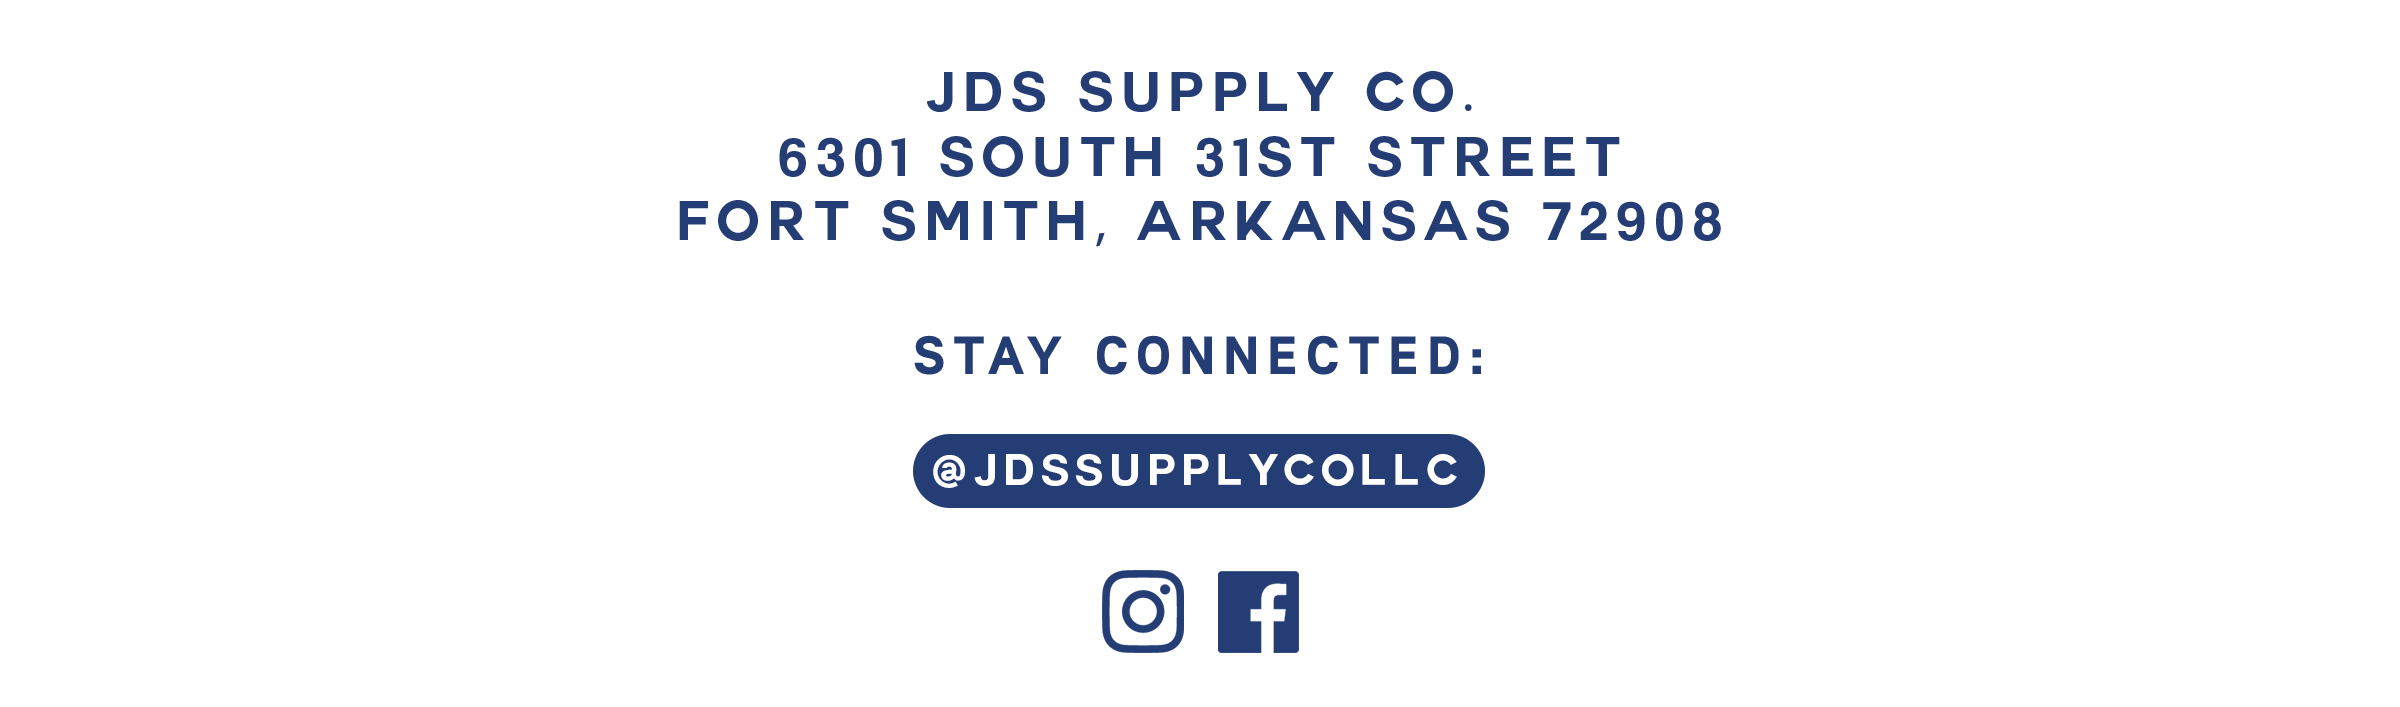 CONTACT JDS SUPPLY